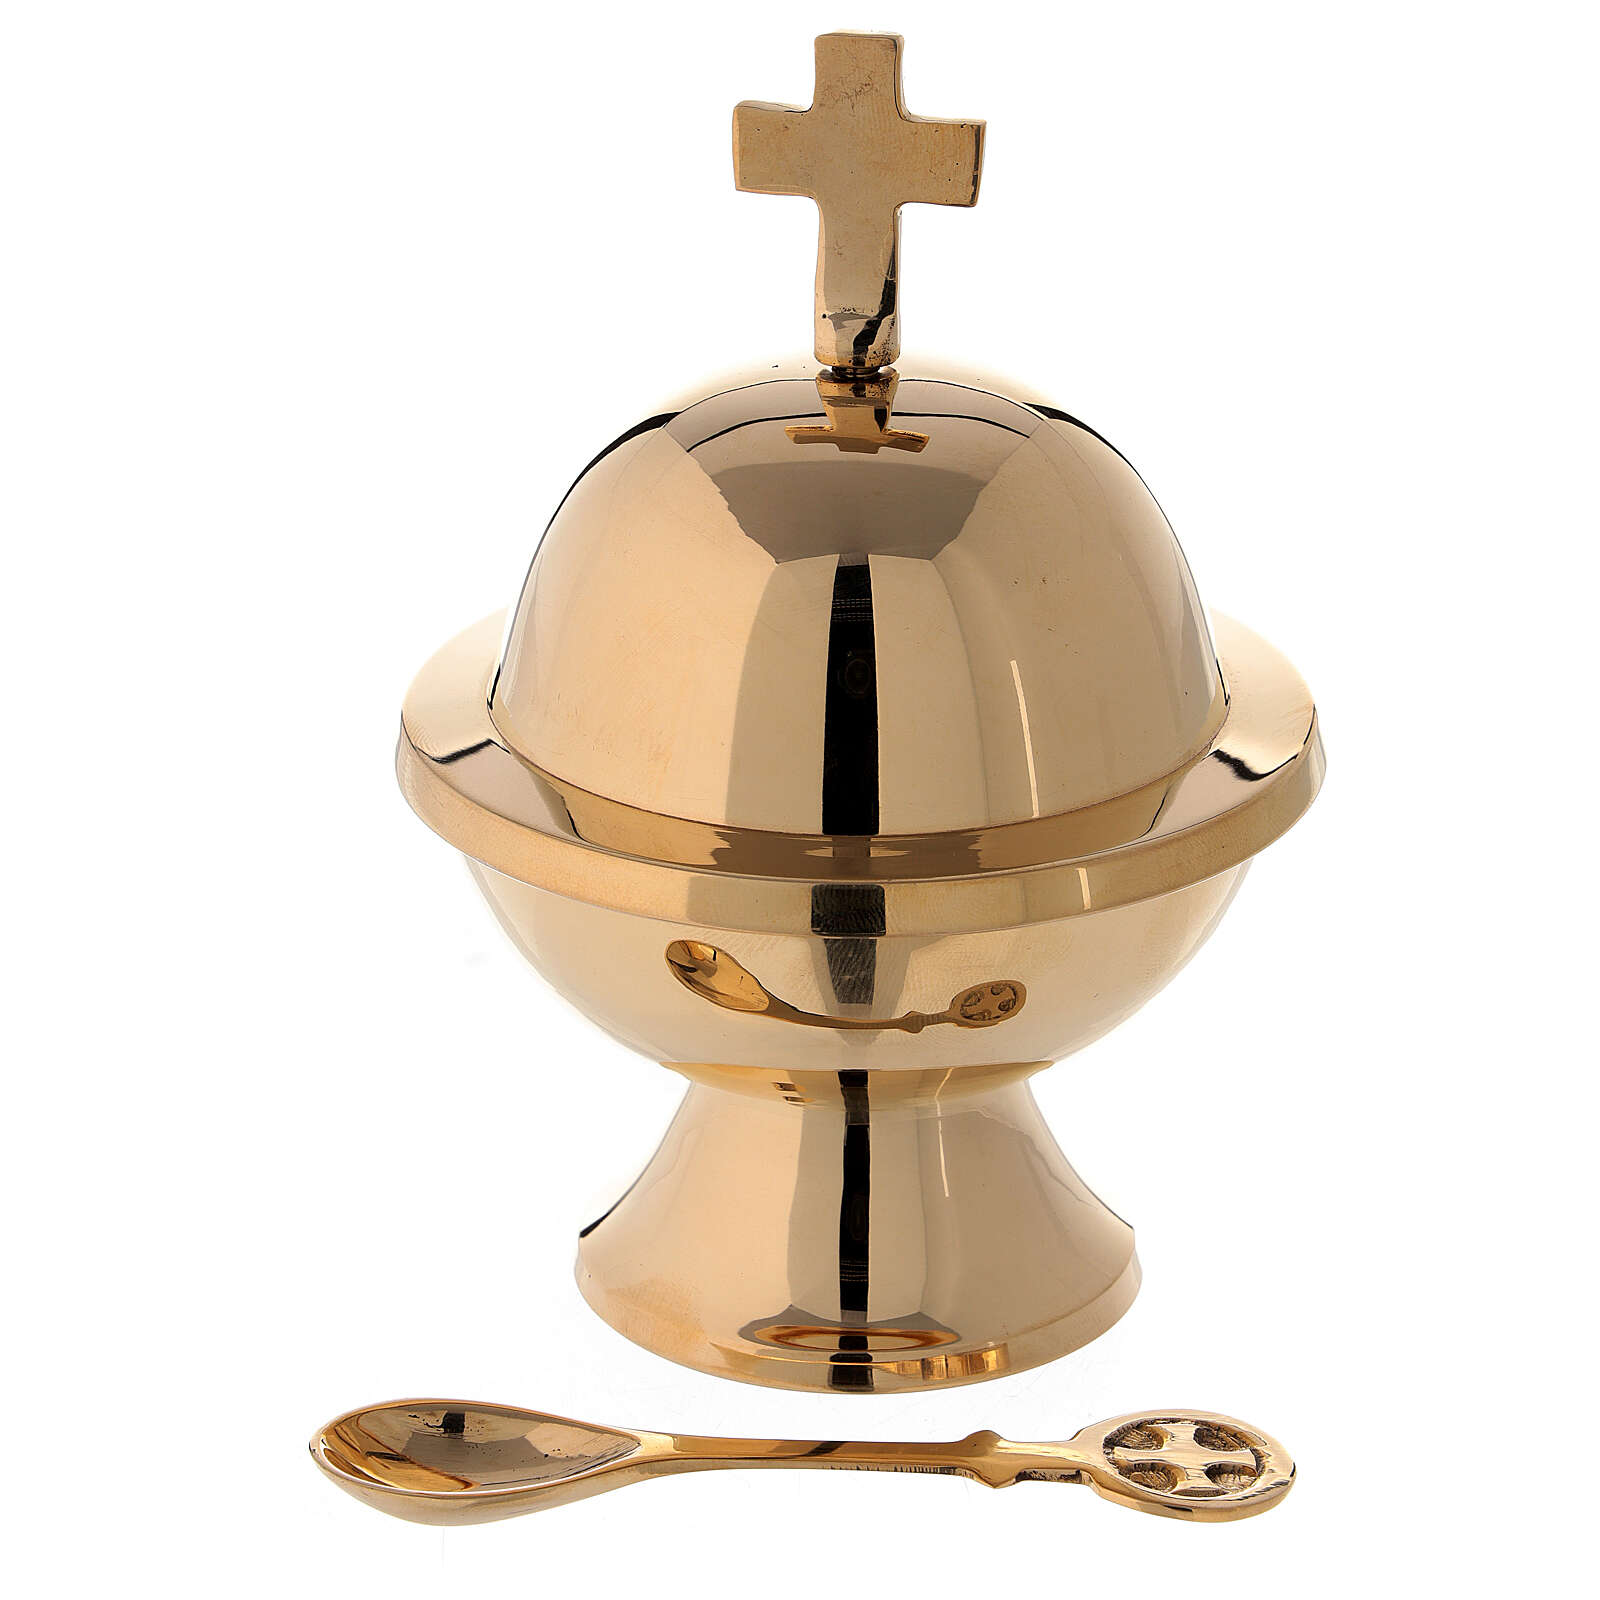 Spherical boat with spoon in gold plated brass h 5 in 3